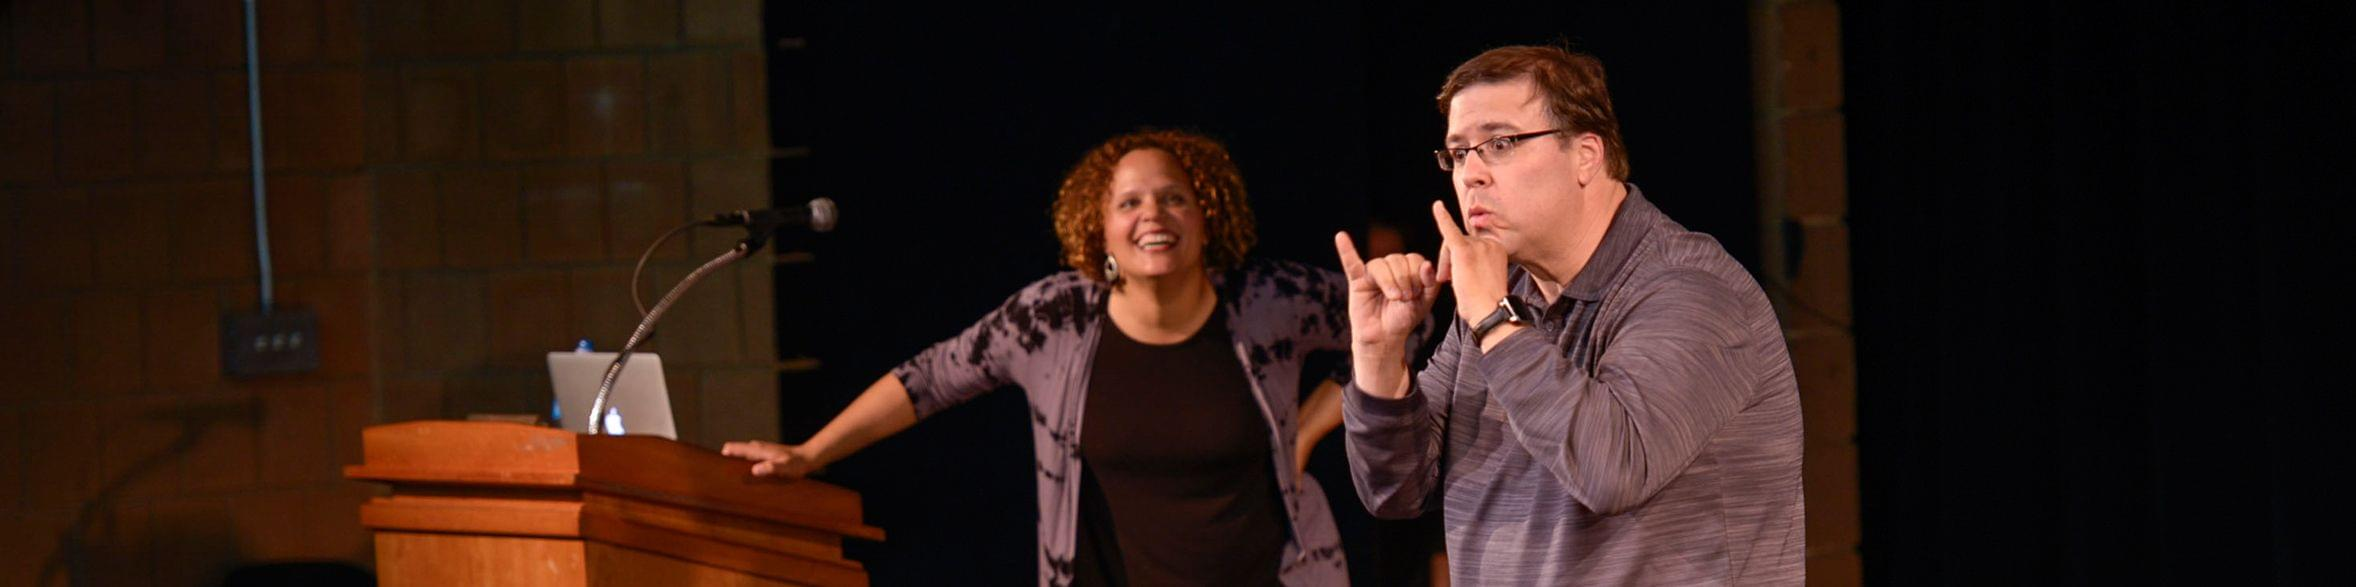 American Sign Language(ASL)-English Interpretation Program